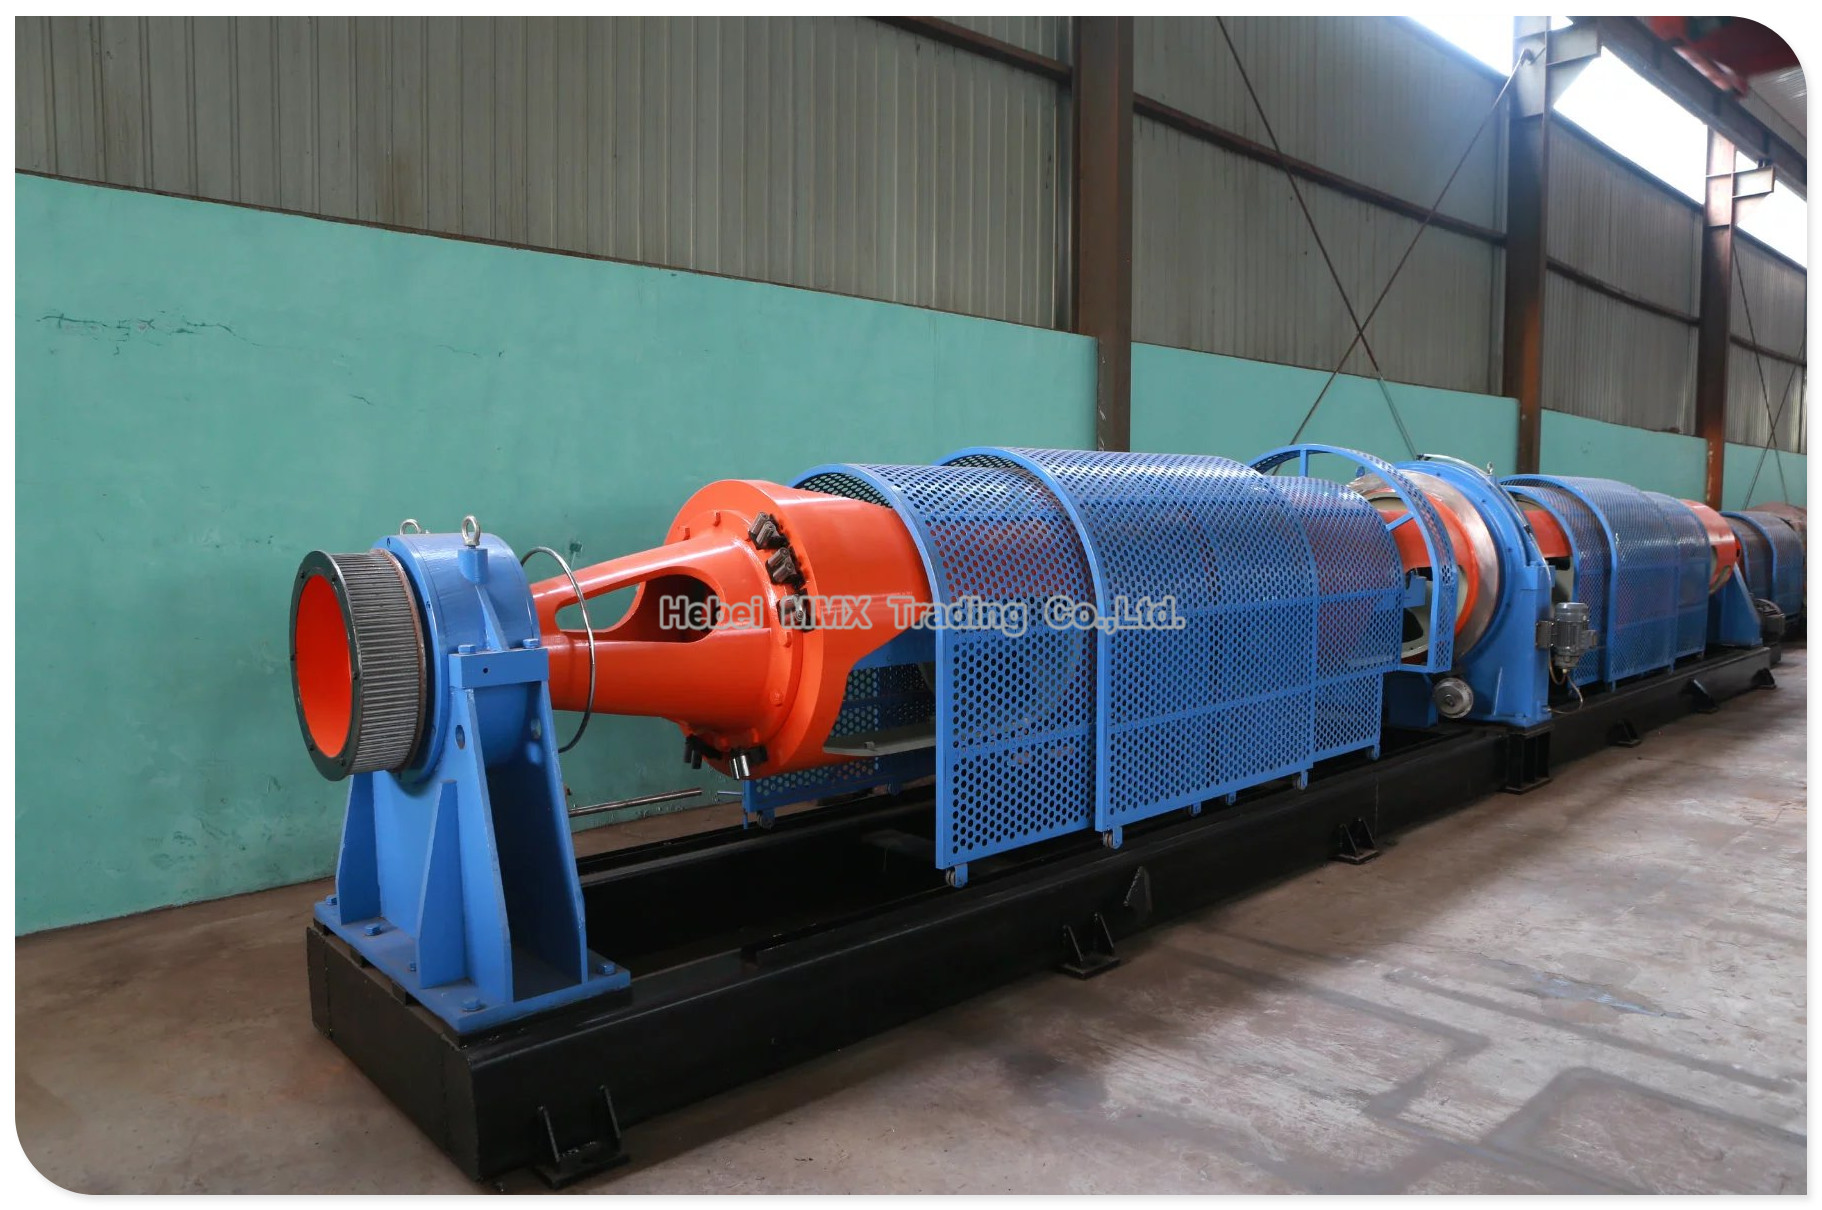 Cable Making Machine. Cable Stranding Machine.Tubular Stranding Machine.